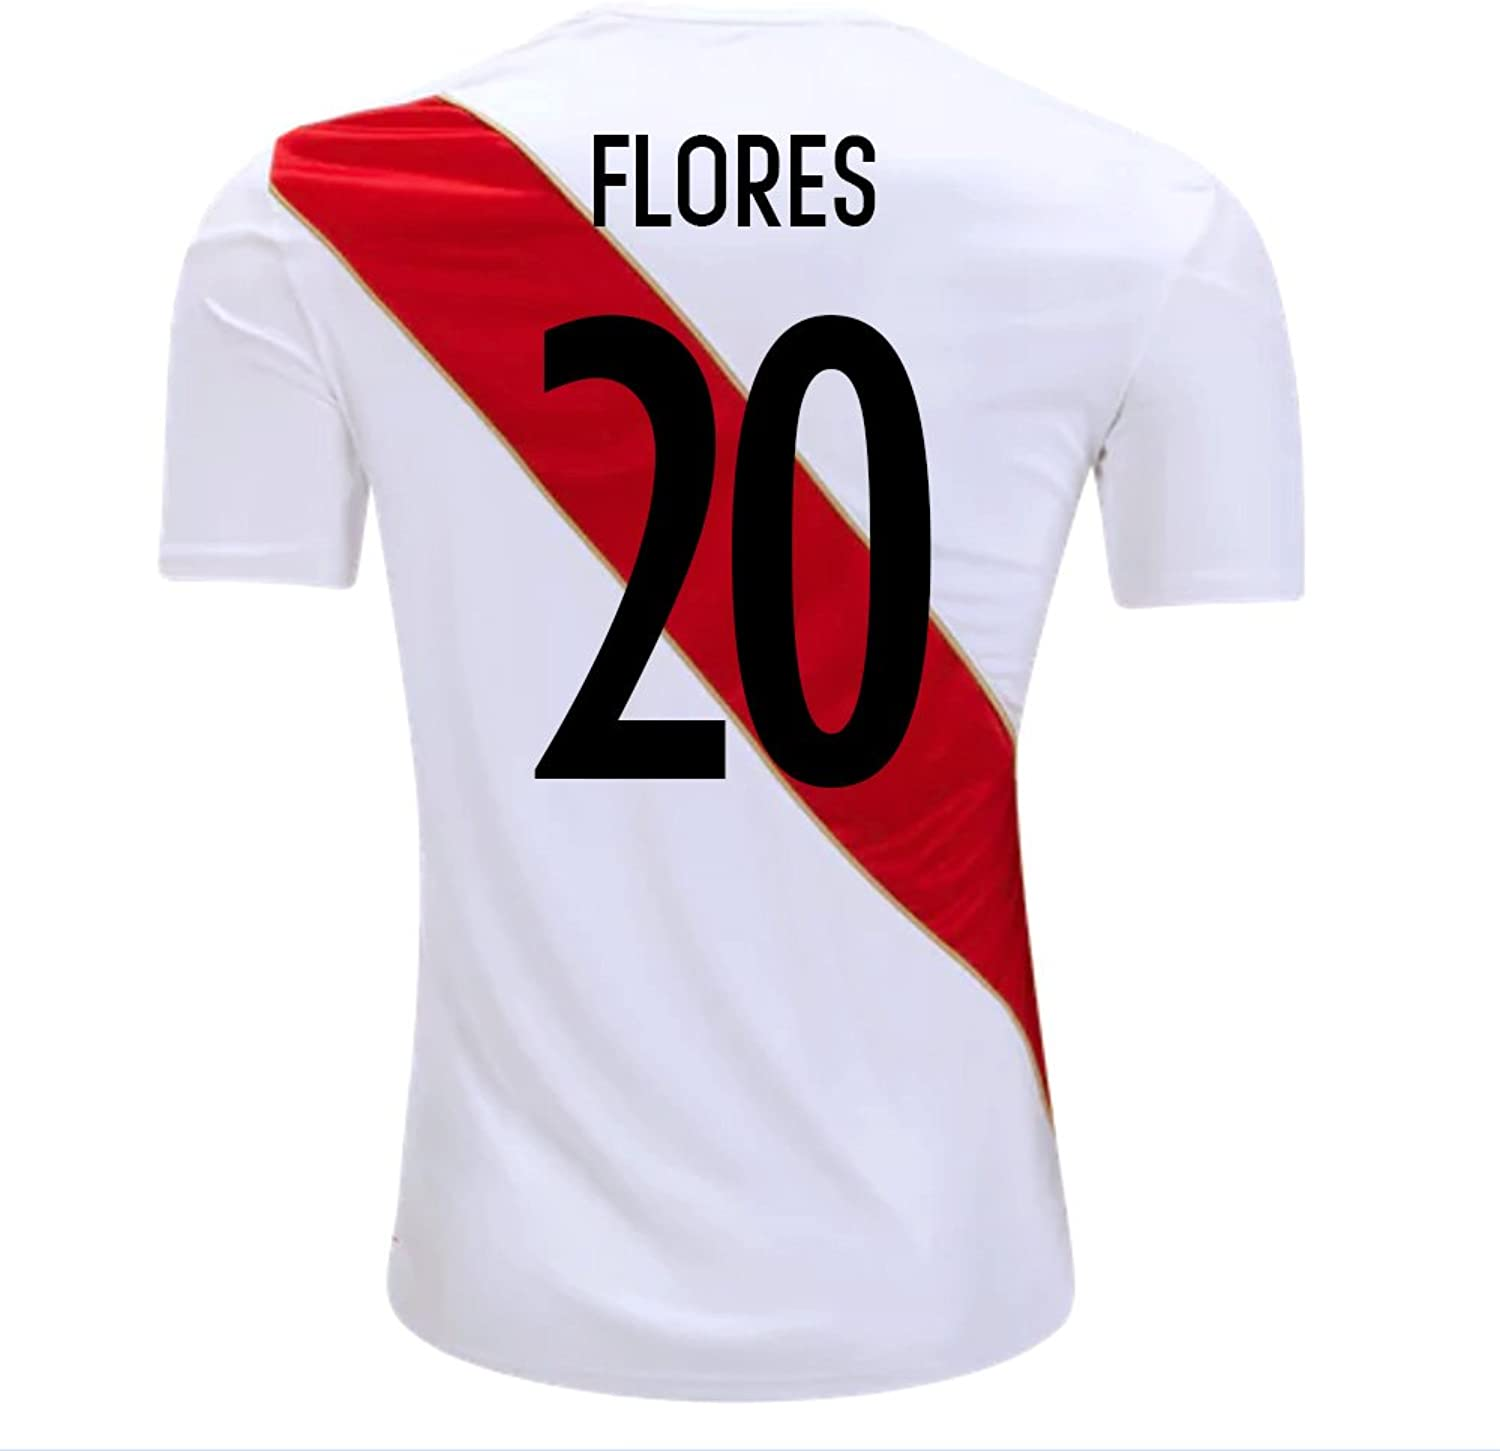 Umbro Flores  20 Peru Home Men's Soccer Jersey World Cup Russia 2018